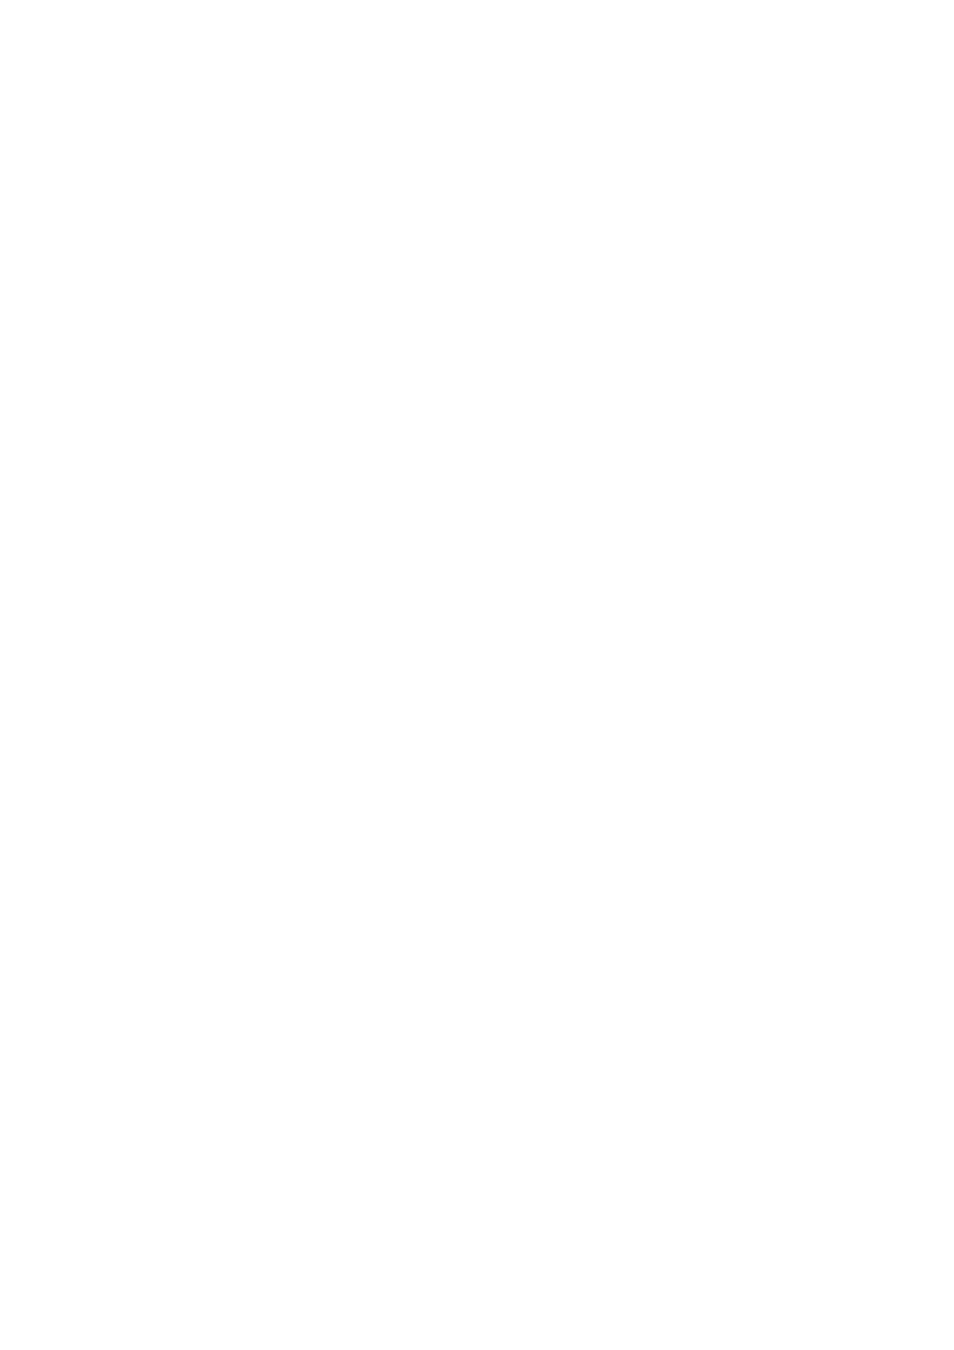 Customer Response Star Micronics Rs 232c Serial To Parallel Converter Spc 8k User Manual Page 27